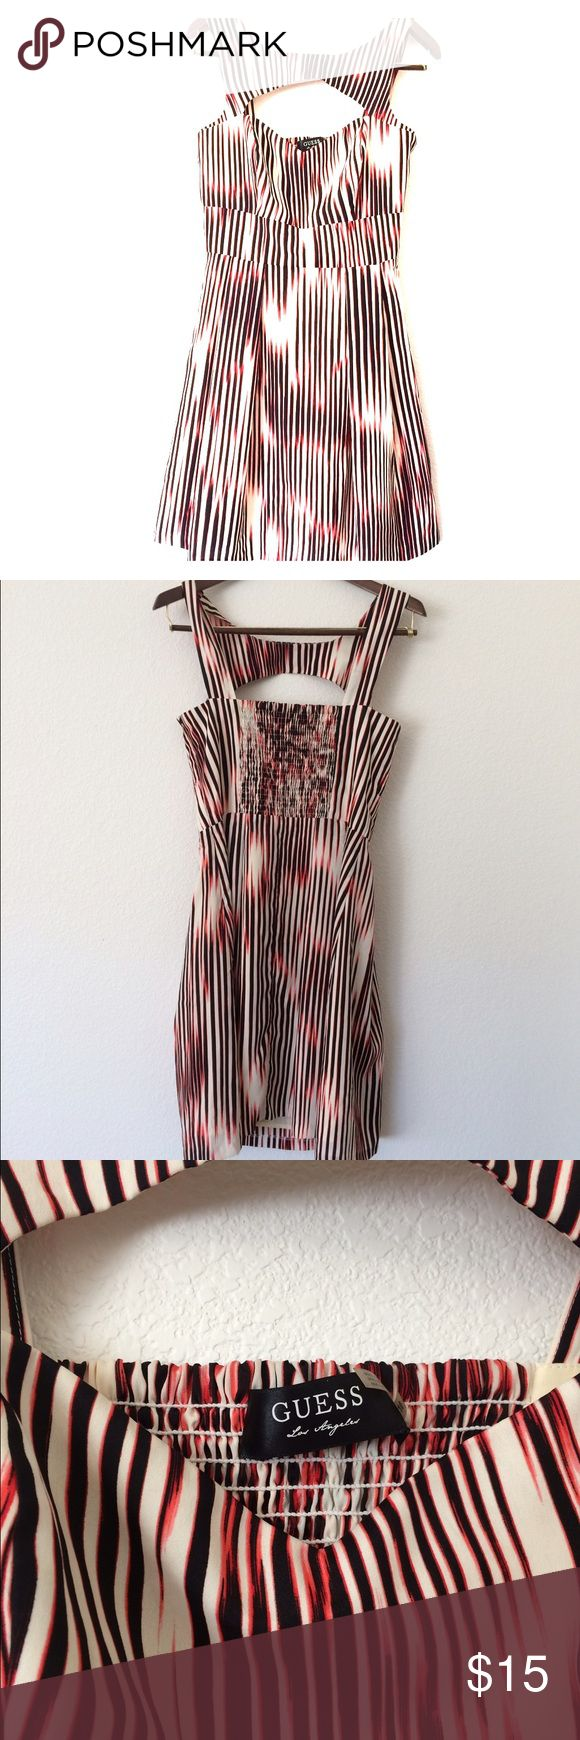 Bright and Flattering Guess Dress. Never worn Guess dress size 10. Colorful with a unique chest cut. The skirt is float and fun. Don't miss this designer dress at a great price!! Guess Dresses